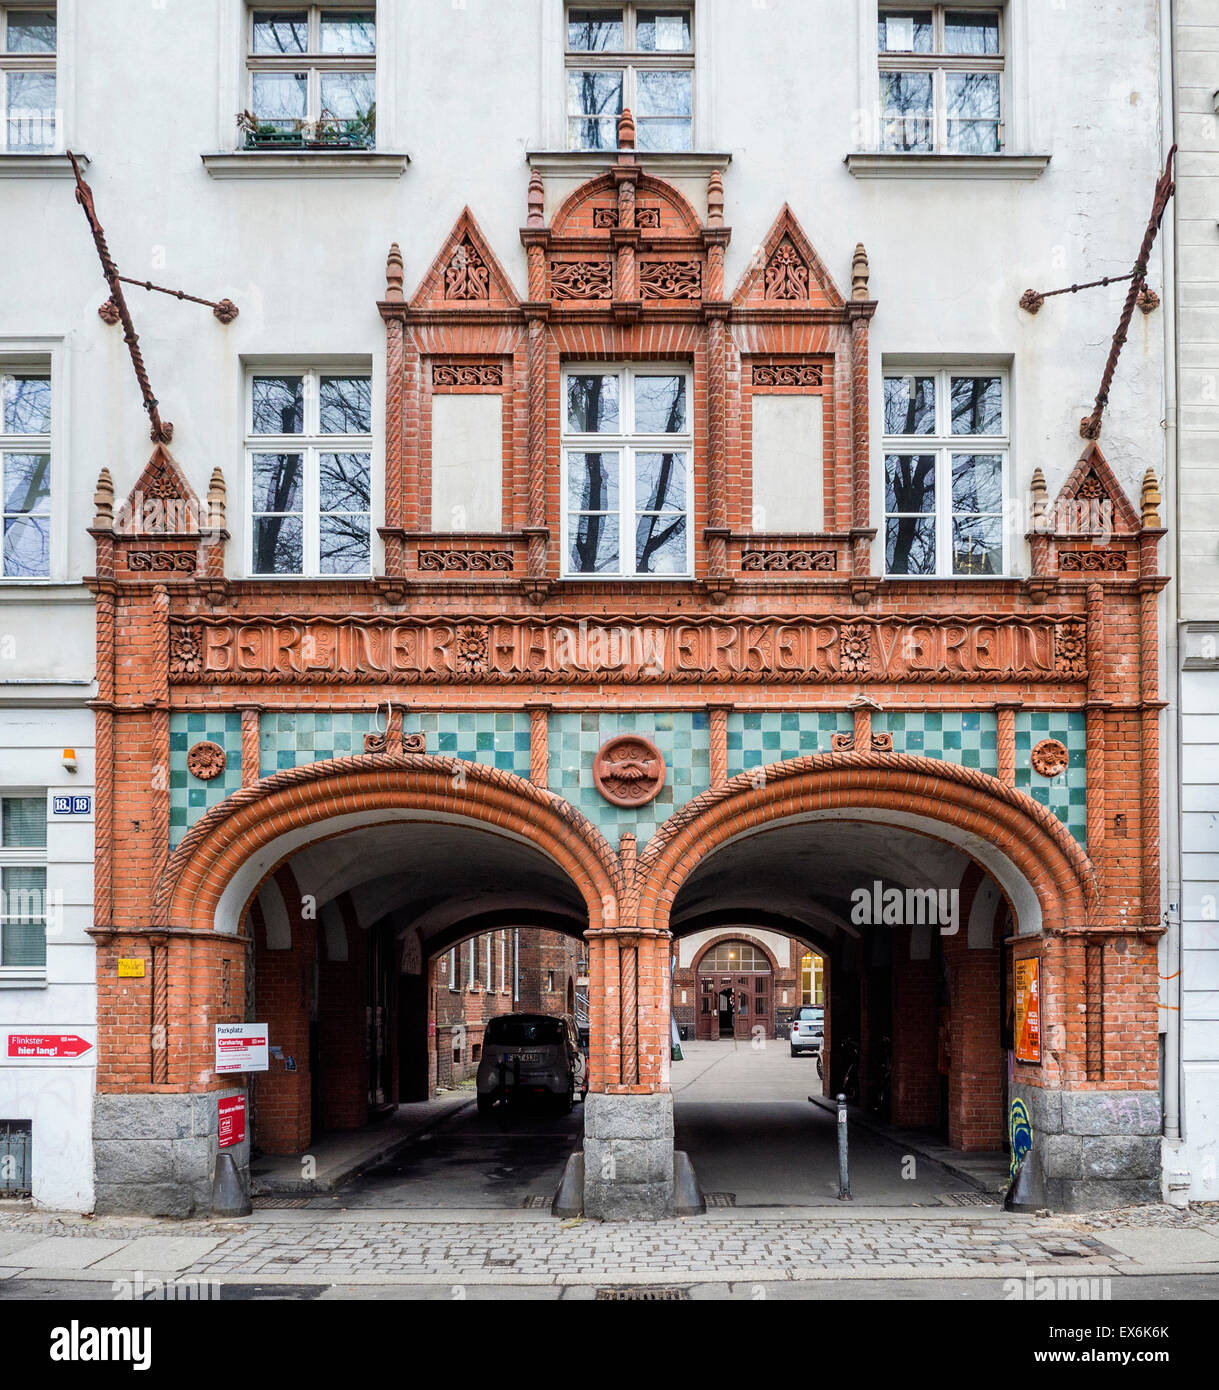 Berlin Handwerkers Verein, Artisans' Association House, elaborate main entrance of historic guild building in - Stock Image